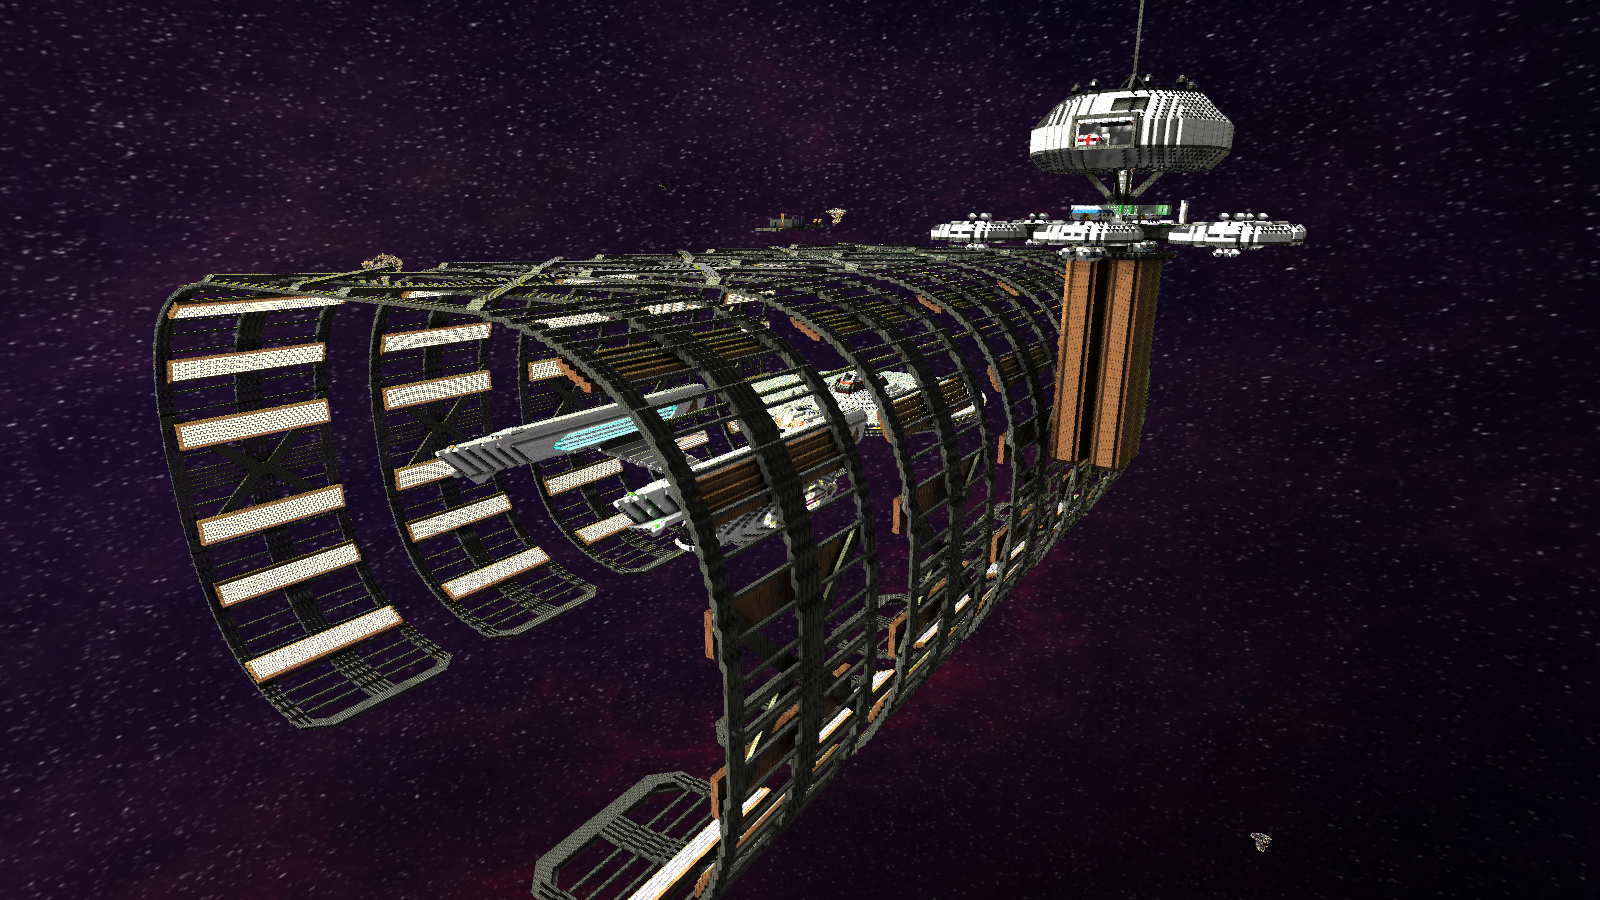 StarMade Space Station (page 2) - Pics about space